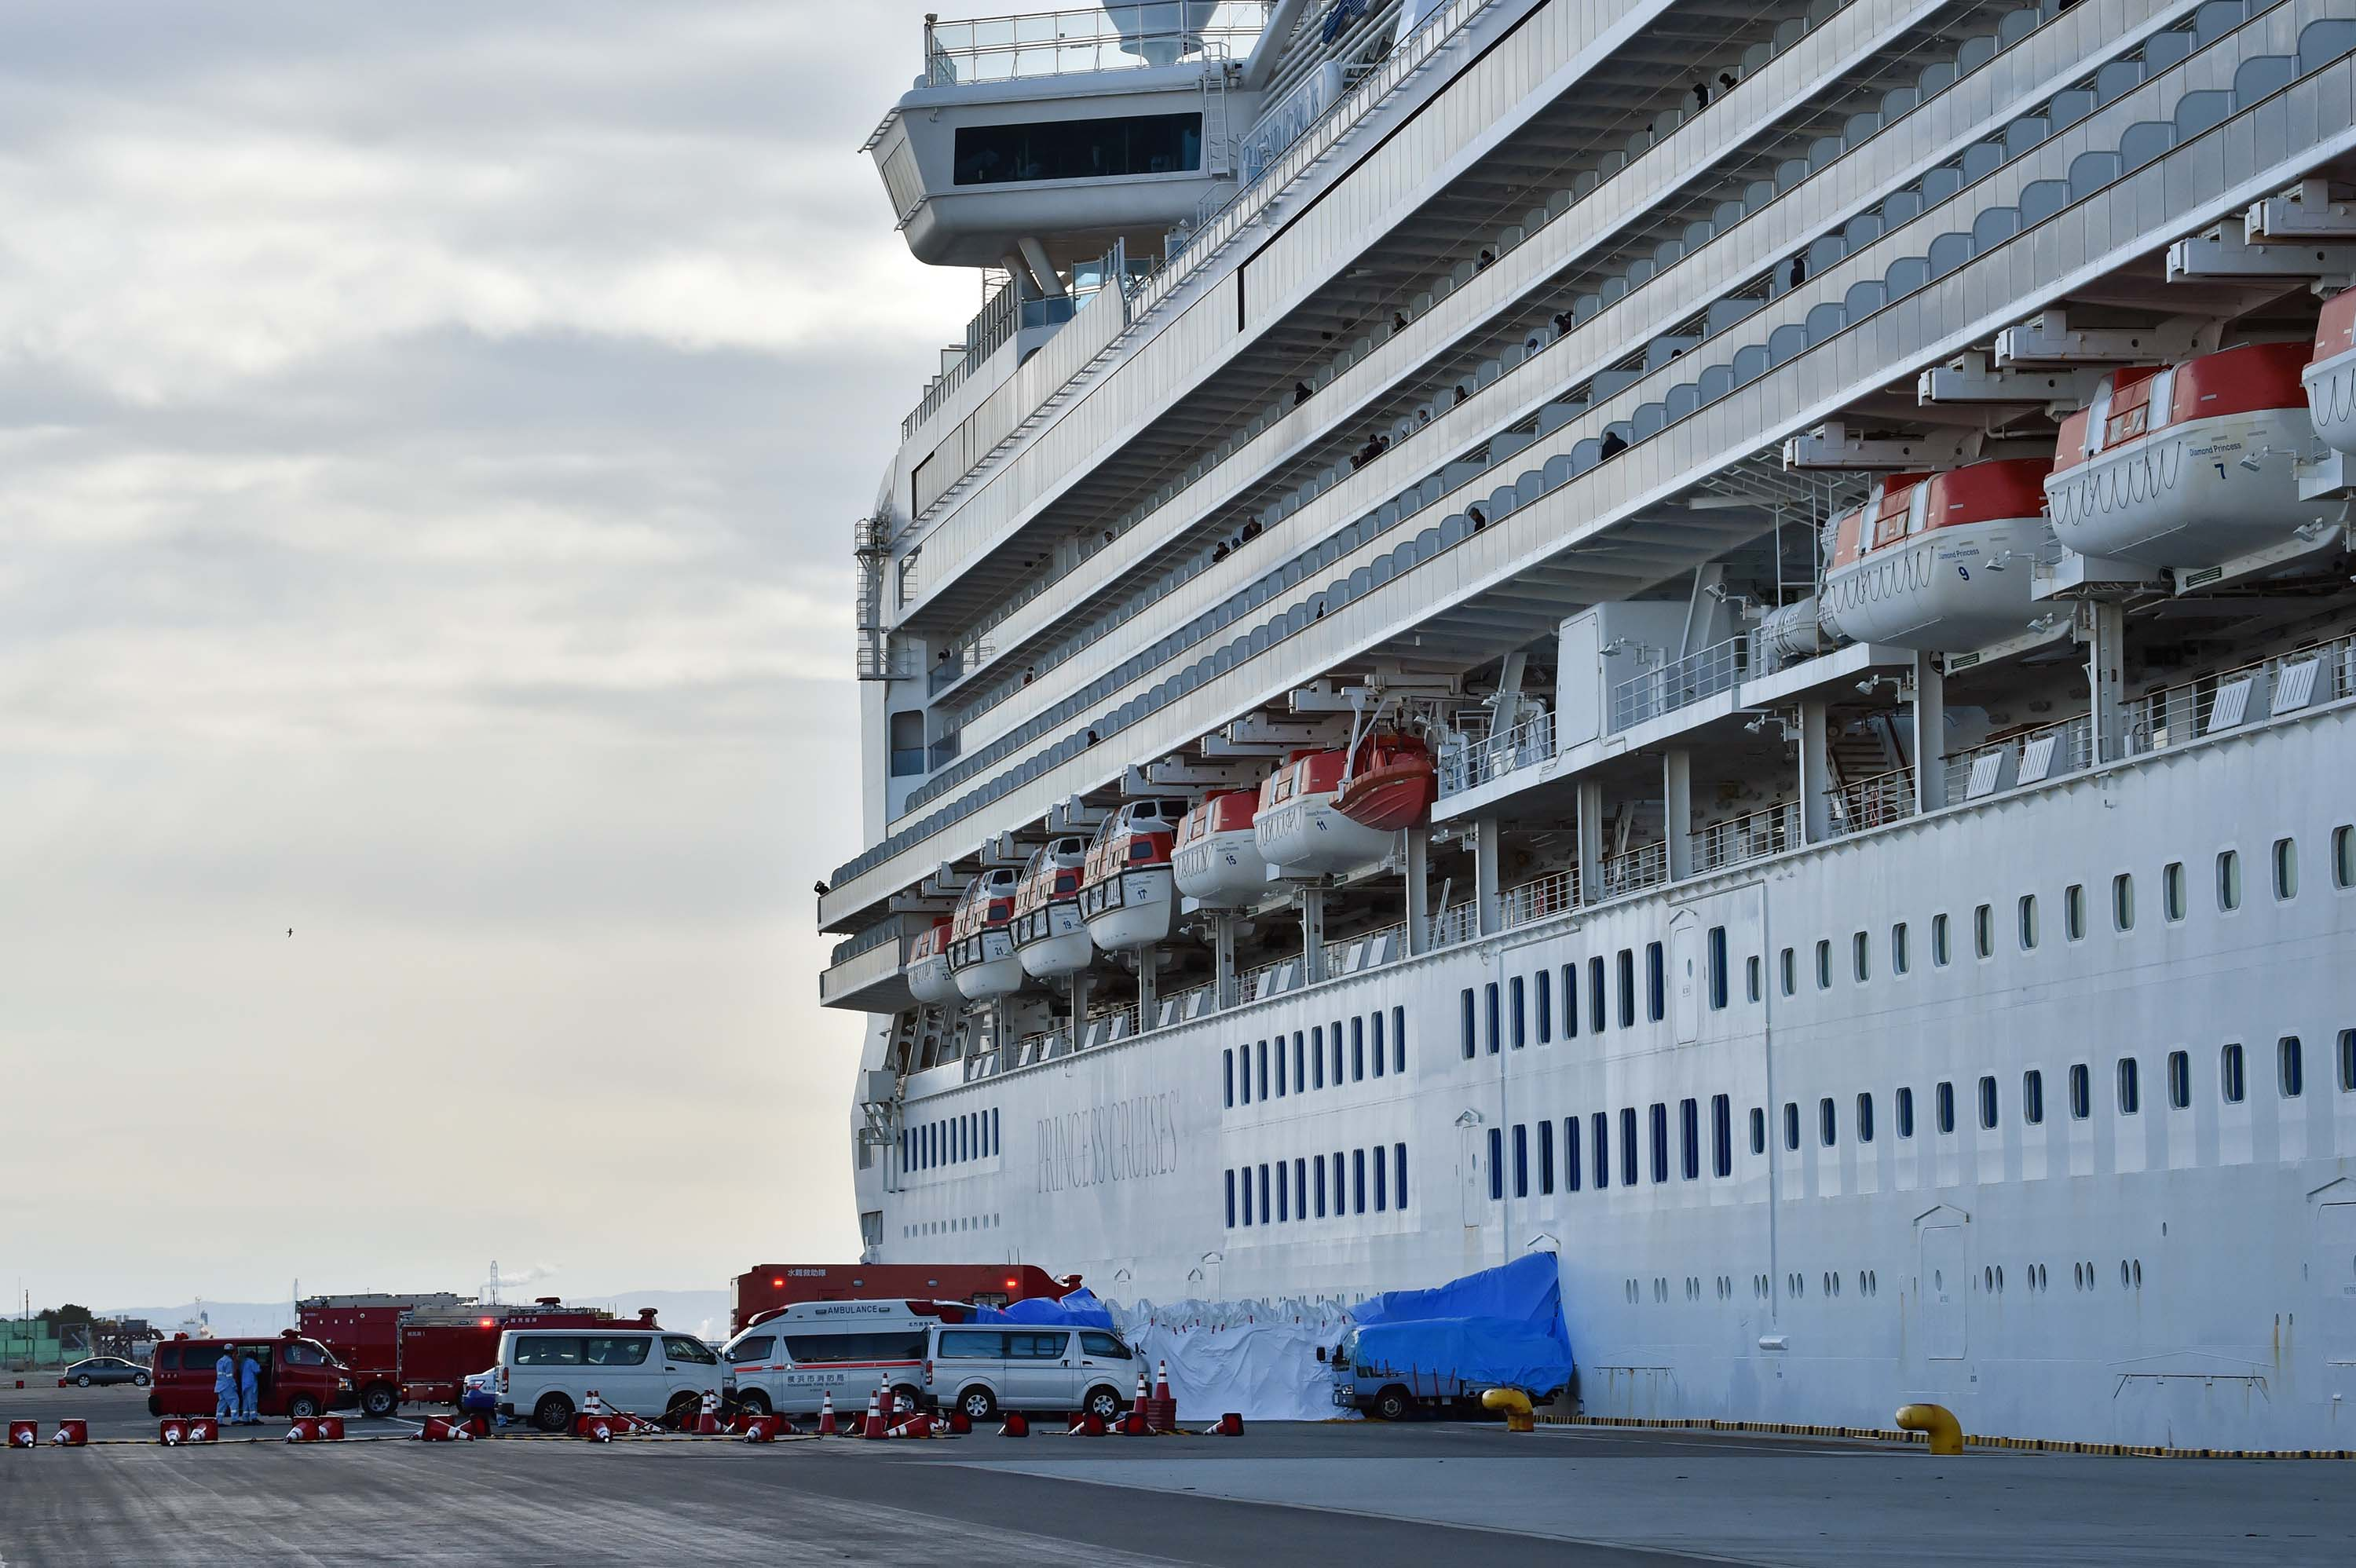 An ambulance waits for patients who tested positive for the coronavirus aboard the Diamond Princess cruise ship, docked at the Daikoku Pier Cruise Terminal in Yokohama, Japan on Thursday.